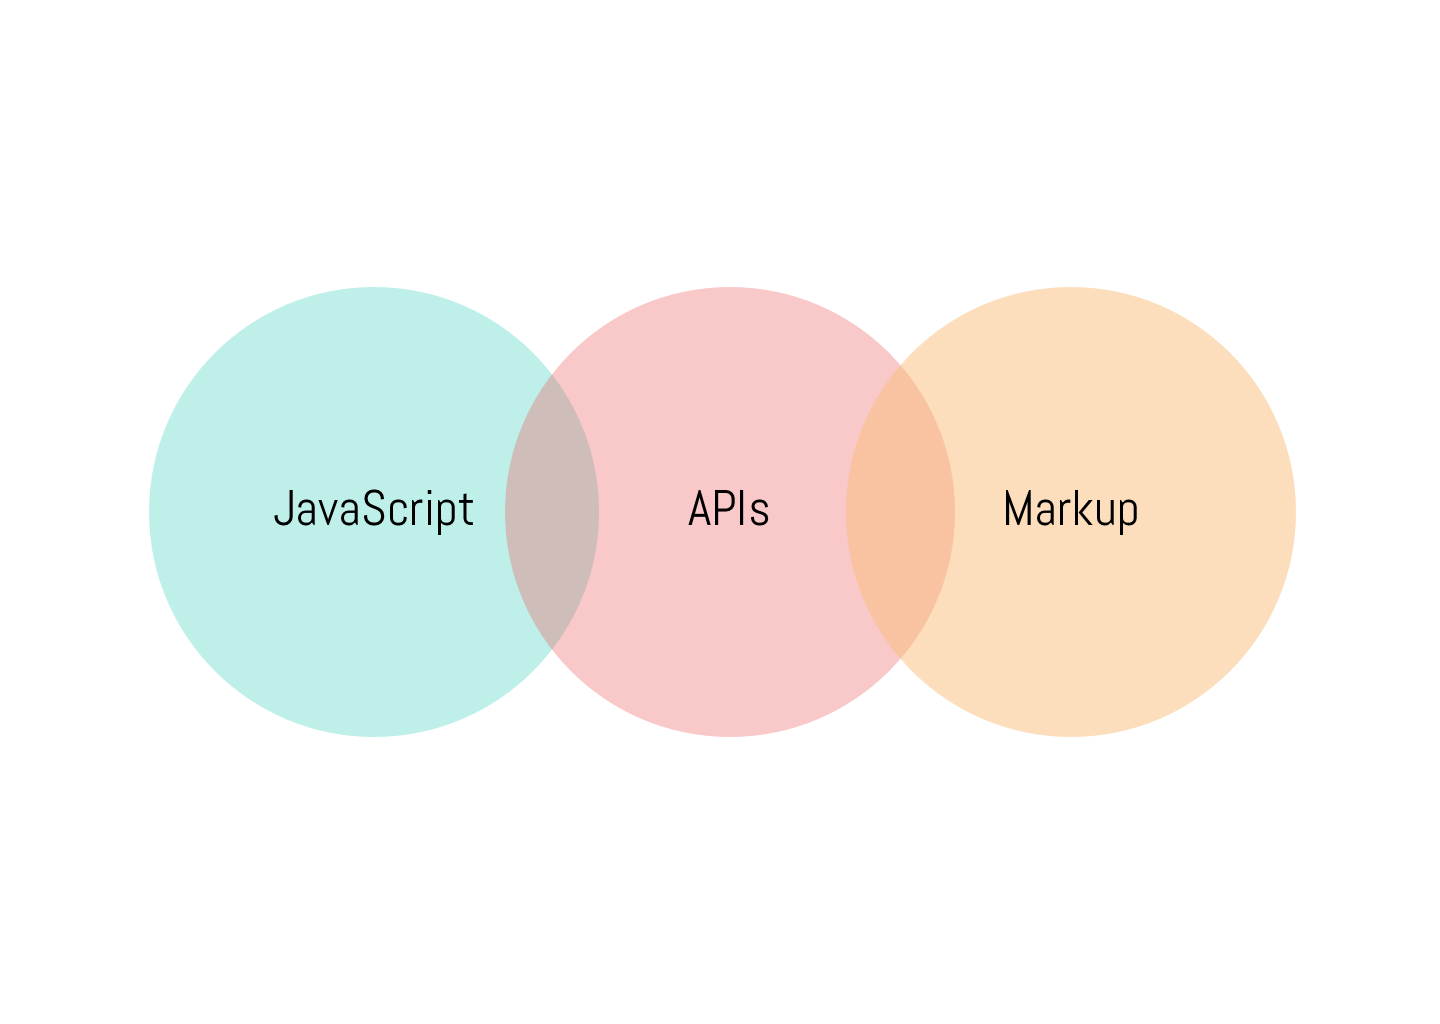 Image for JAMStack - JavaScript, APIs and Markup